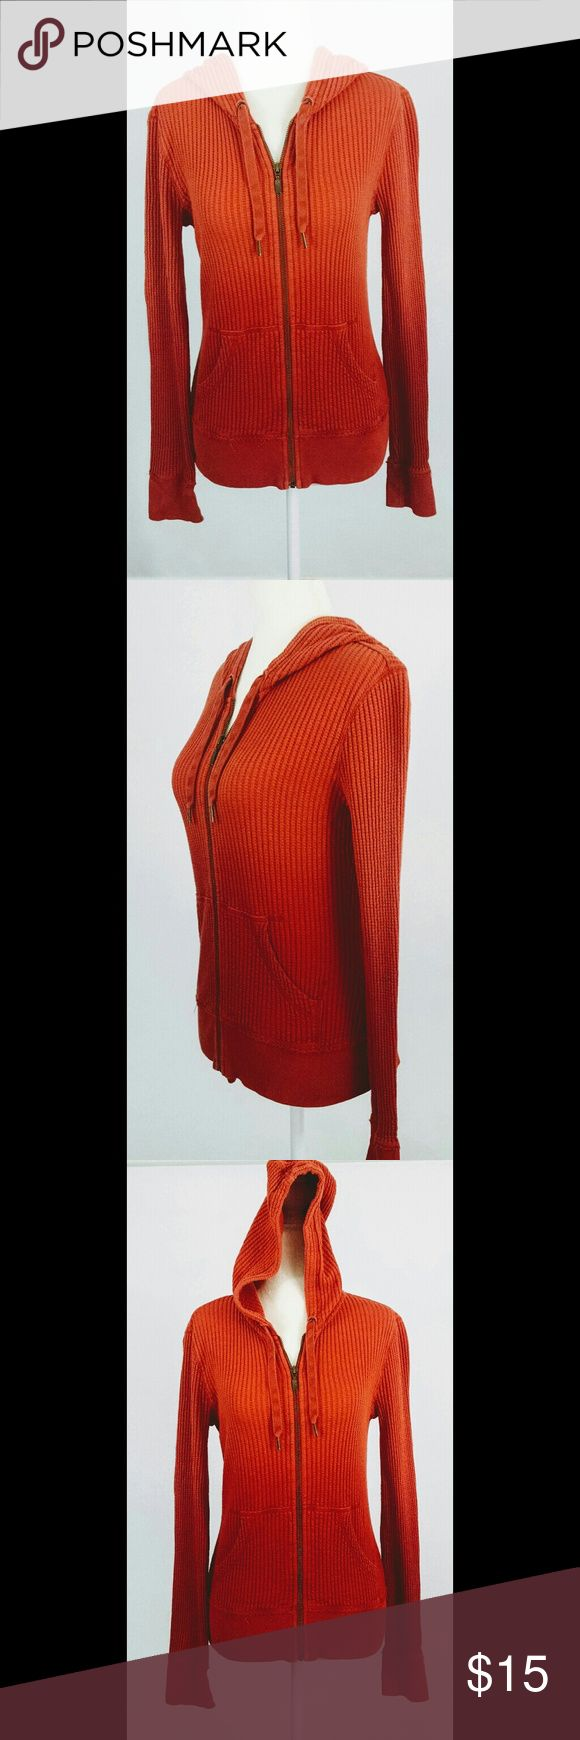 """Eddie Bauer Women's Zip Up Hooded Jacket M Eddie Bauer Women's Zip Up Hooded Thermal Waffle Weave Jacket with drawstring.  Pre Owned with no rips, tears or stains.  Jacket has front pockets.  Hombre Orange  100% Cotton  Long Sleeve  Tag Size: M  Bust: 18"""" (from under arm to under arm)  Sleeve Length: 24"""" (from shoulder seam to cuff)  Length: 21.5"""" (from neck seam to hem)  Approximate Measurements taken with item laying flat. Please ask any questions prior to purchasing.  Thank you…"""